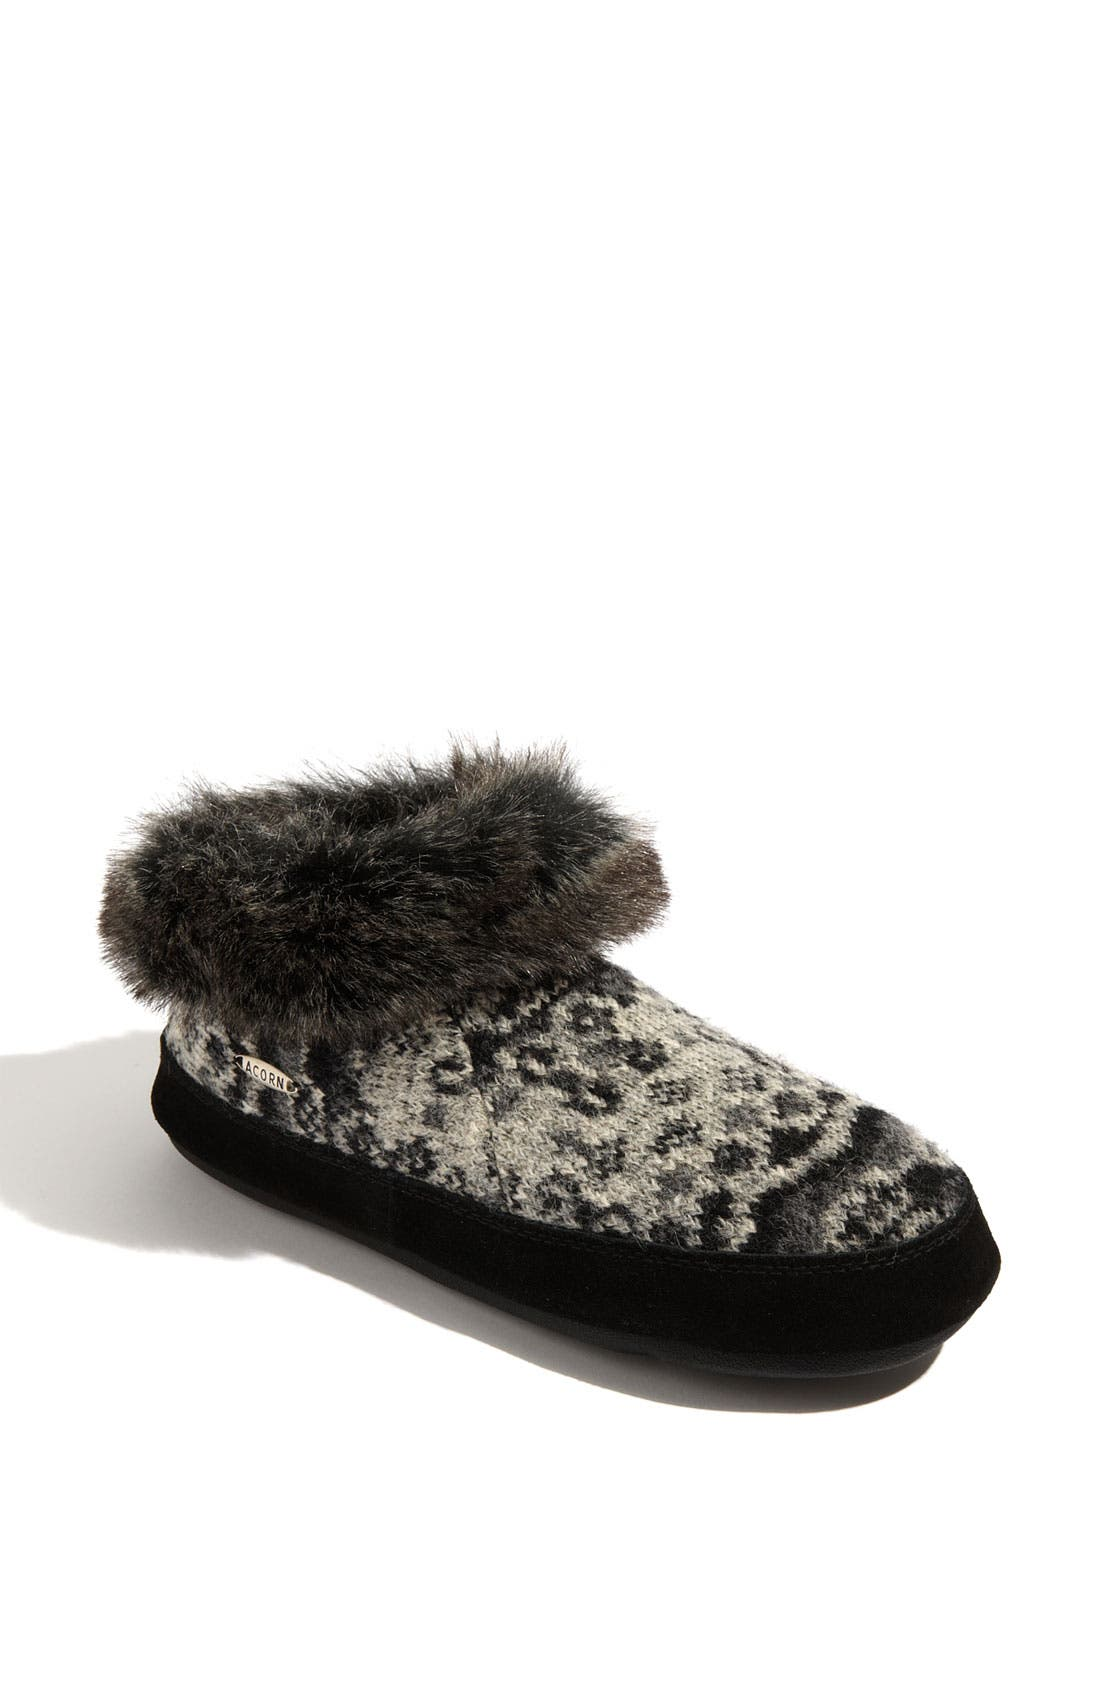 Main Image - Acorn 'Bromley' Bootie Slipper